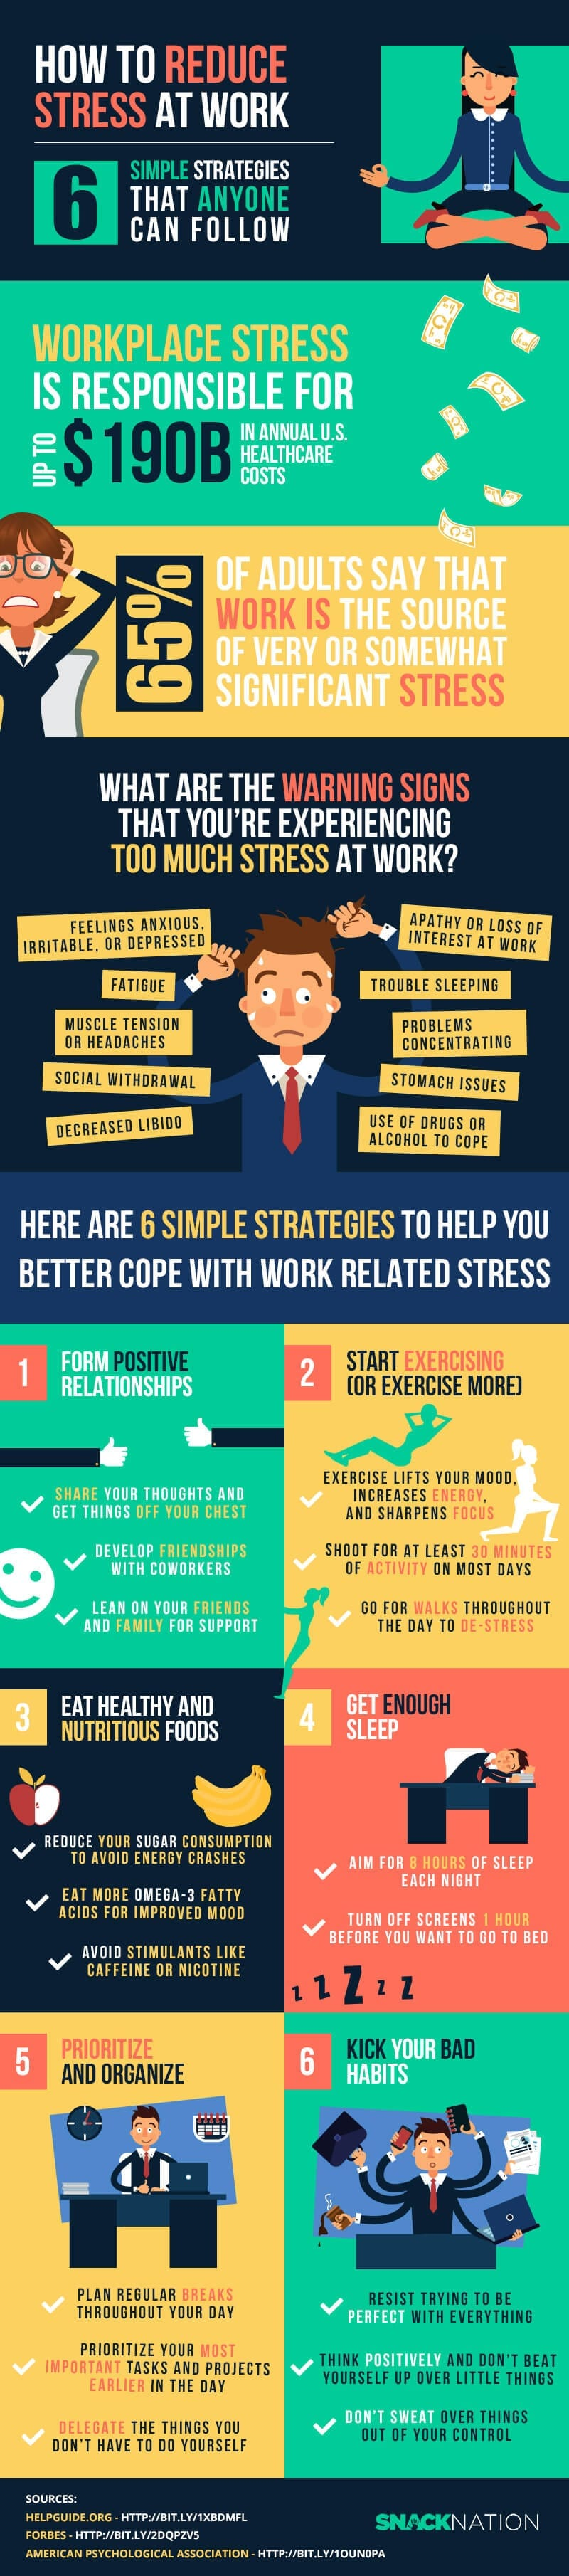 how-to-reduce-stress-at-work